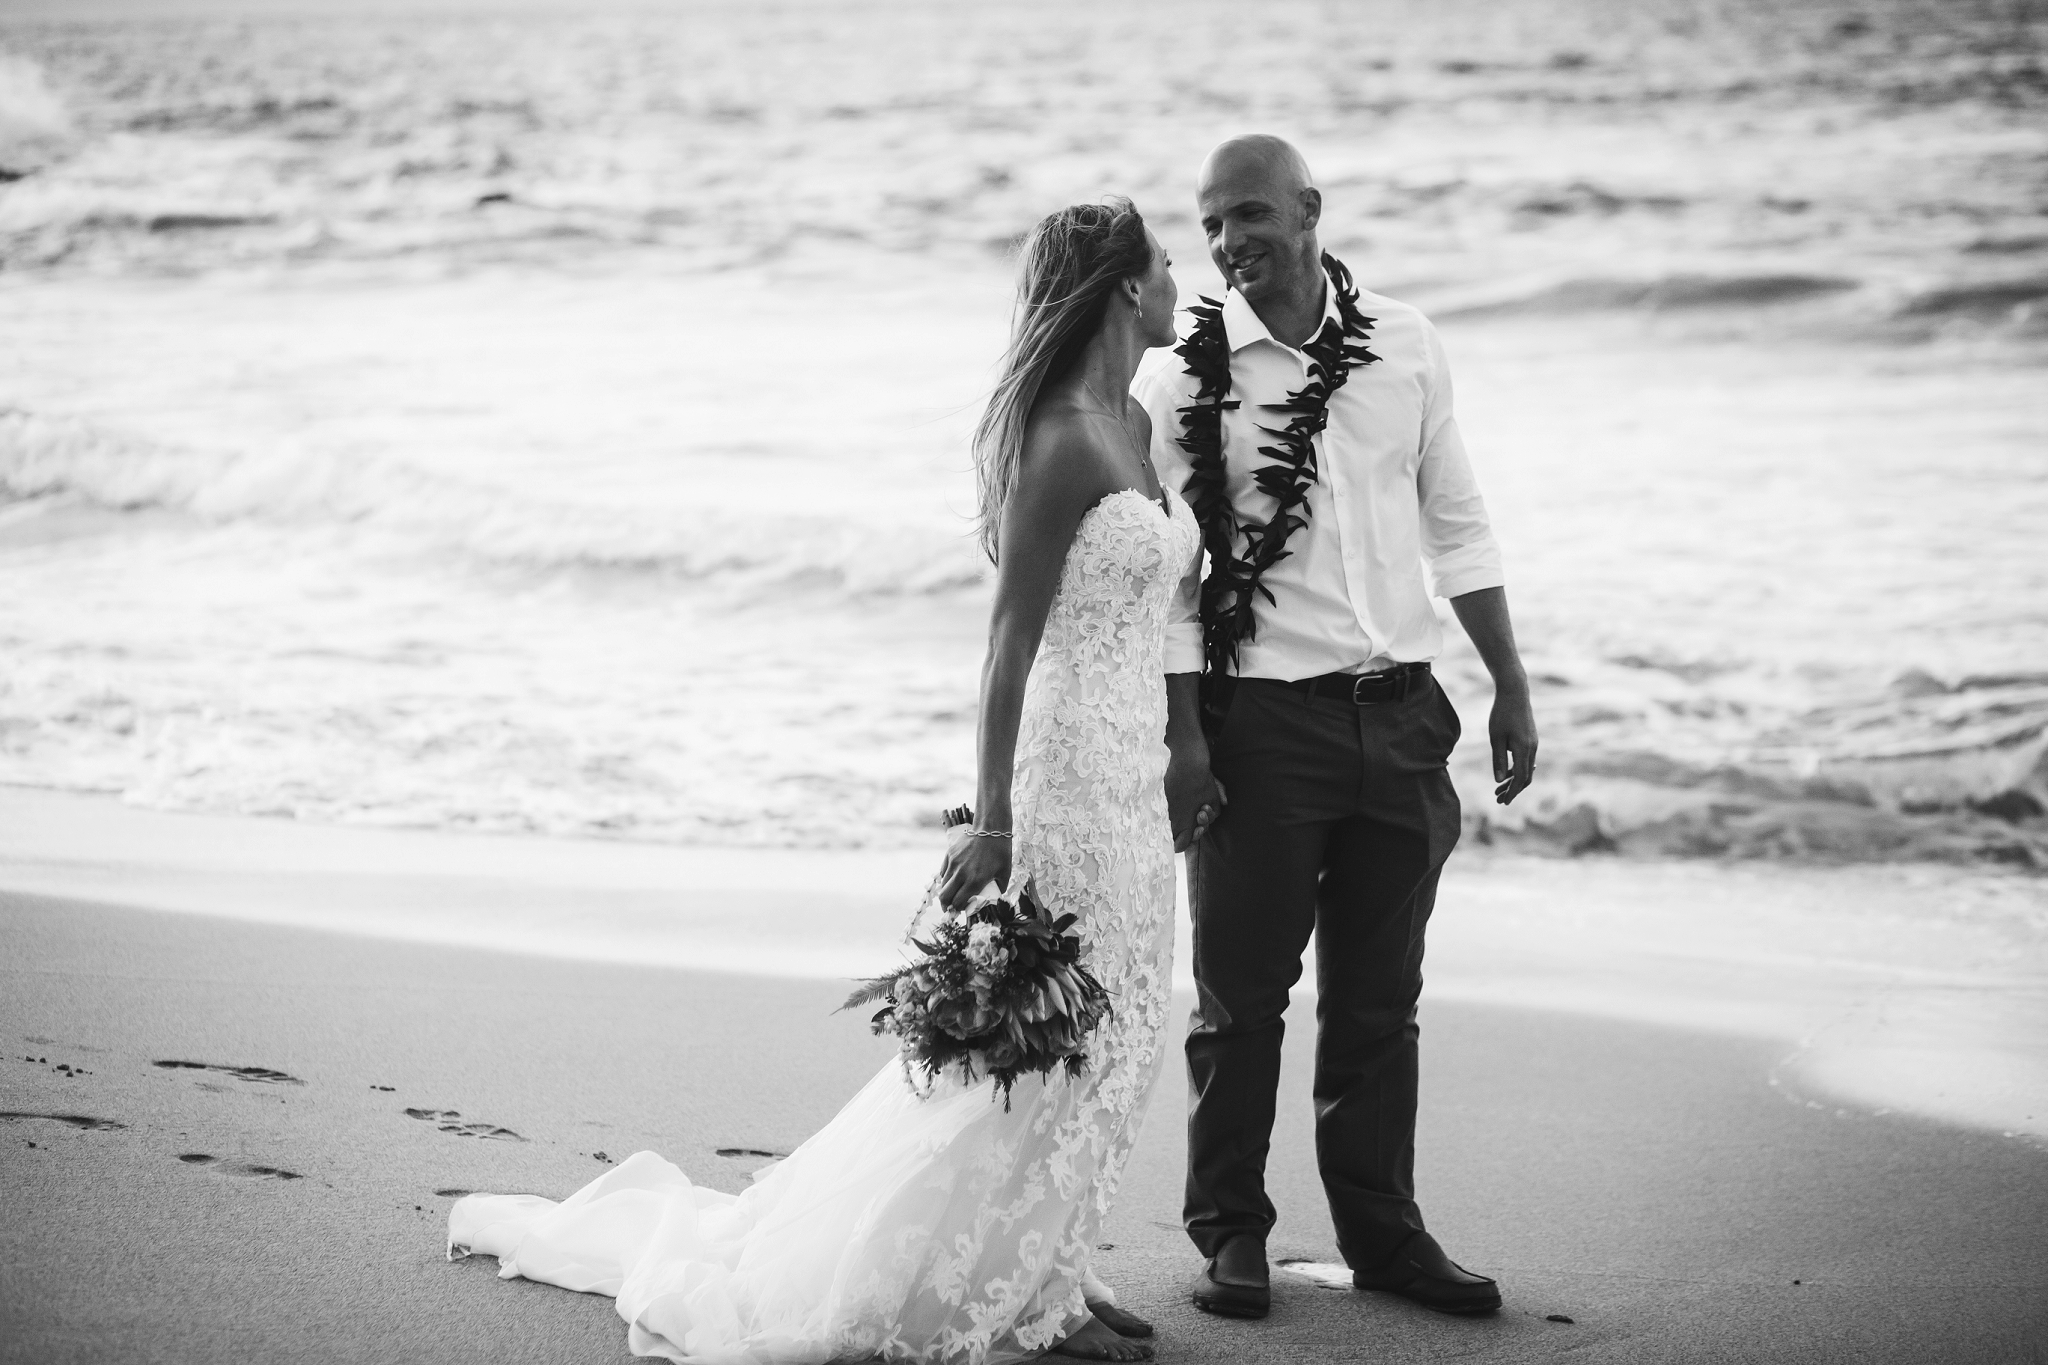 Maui_wedding_photographer_hawaii_destination_vannessa_kralovic (5).jpg